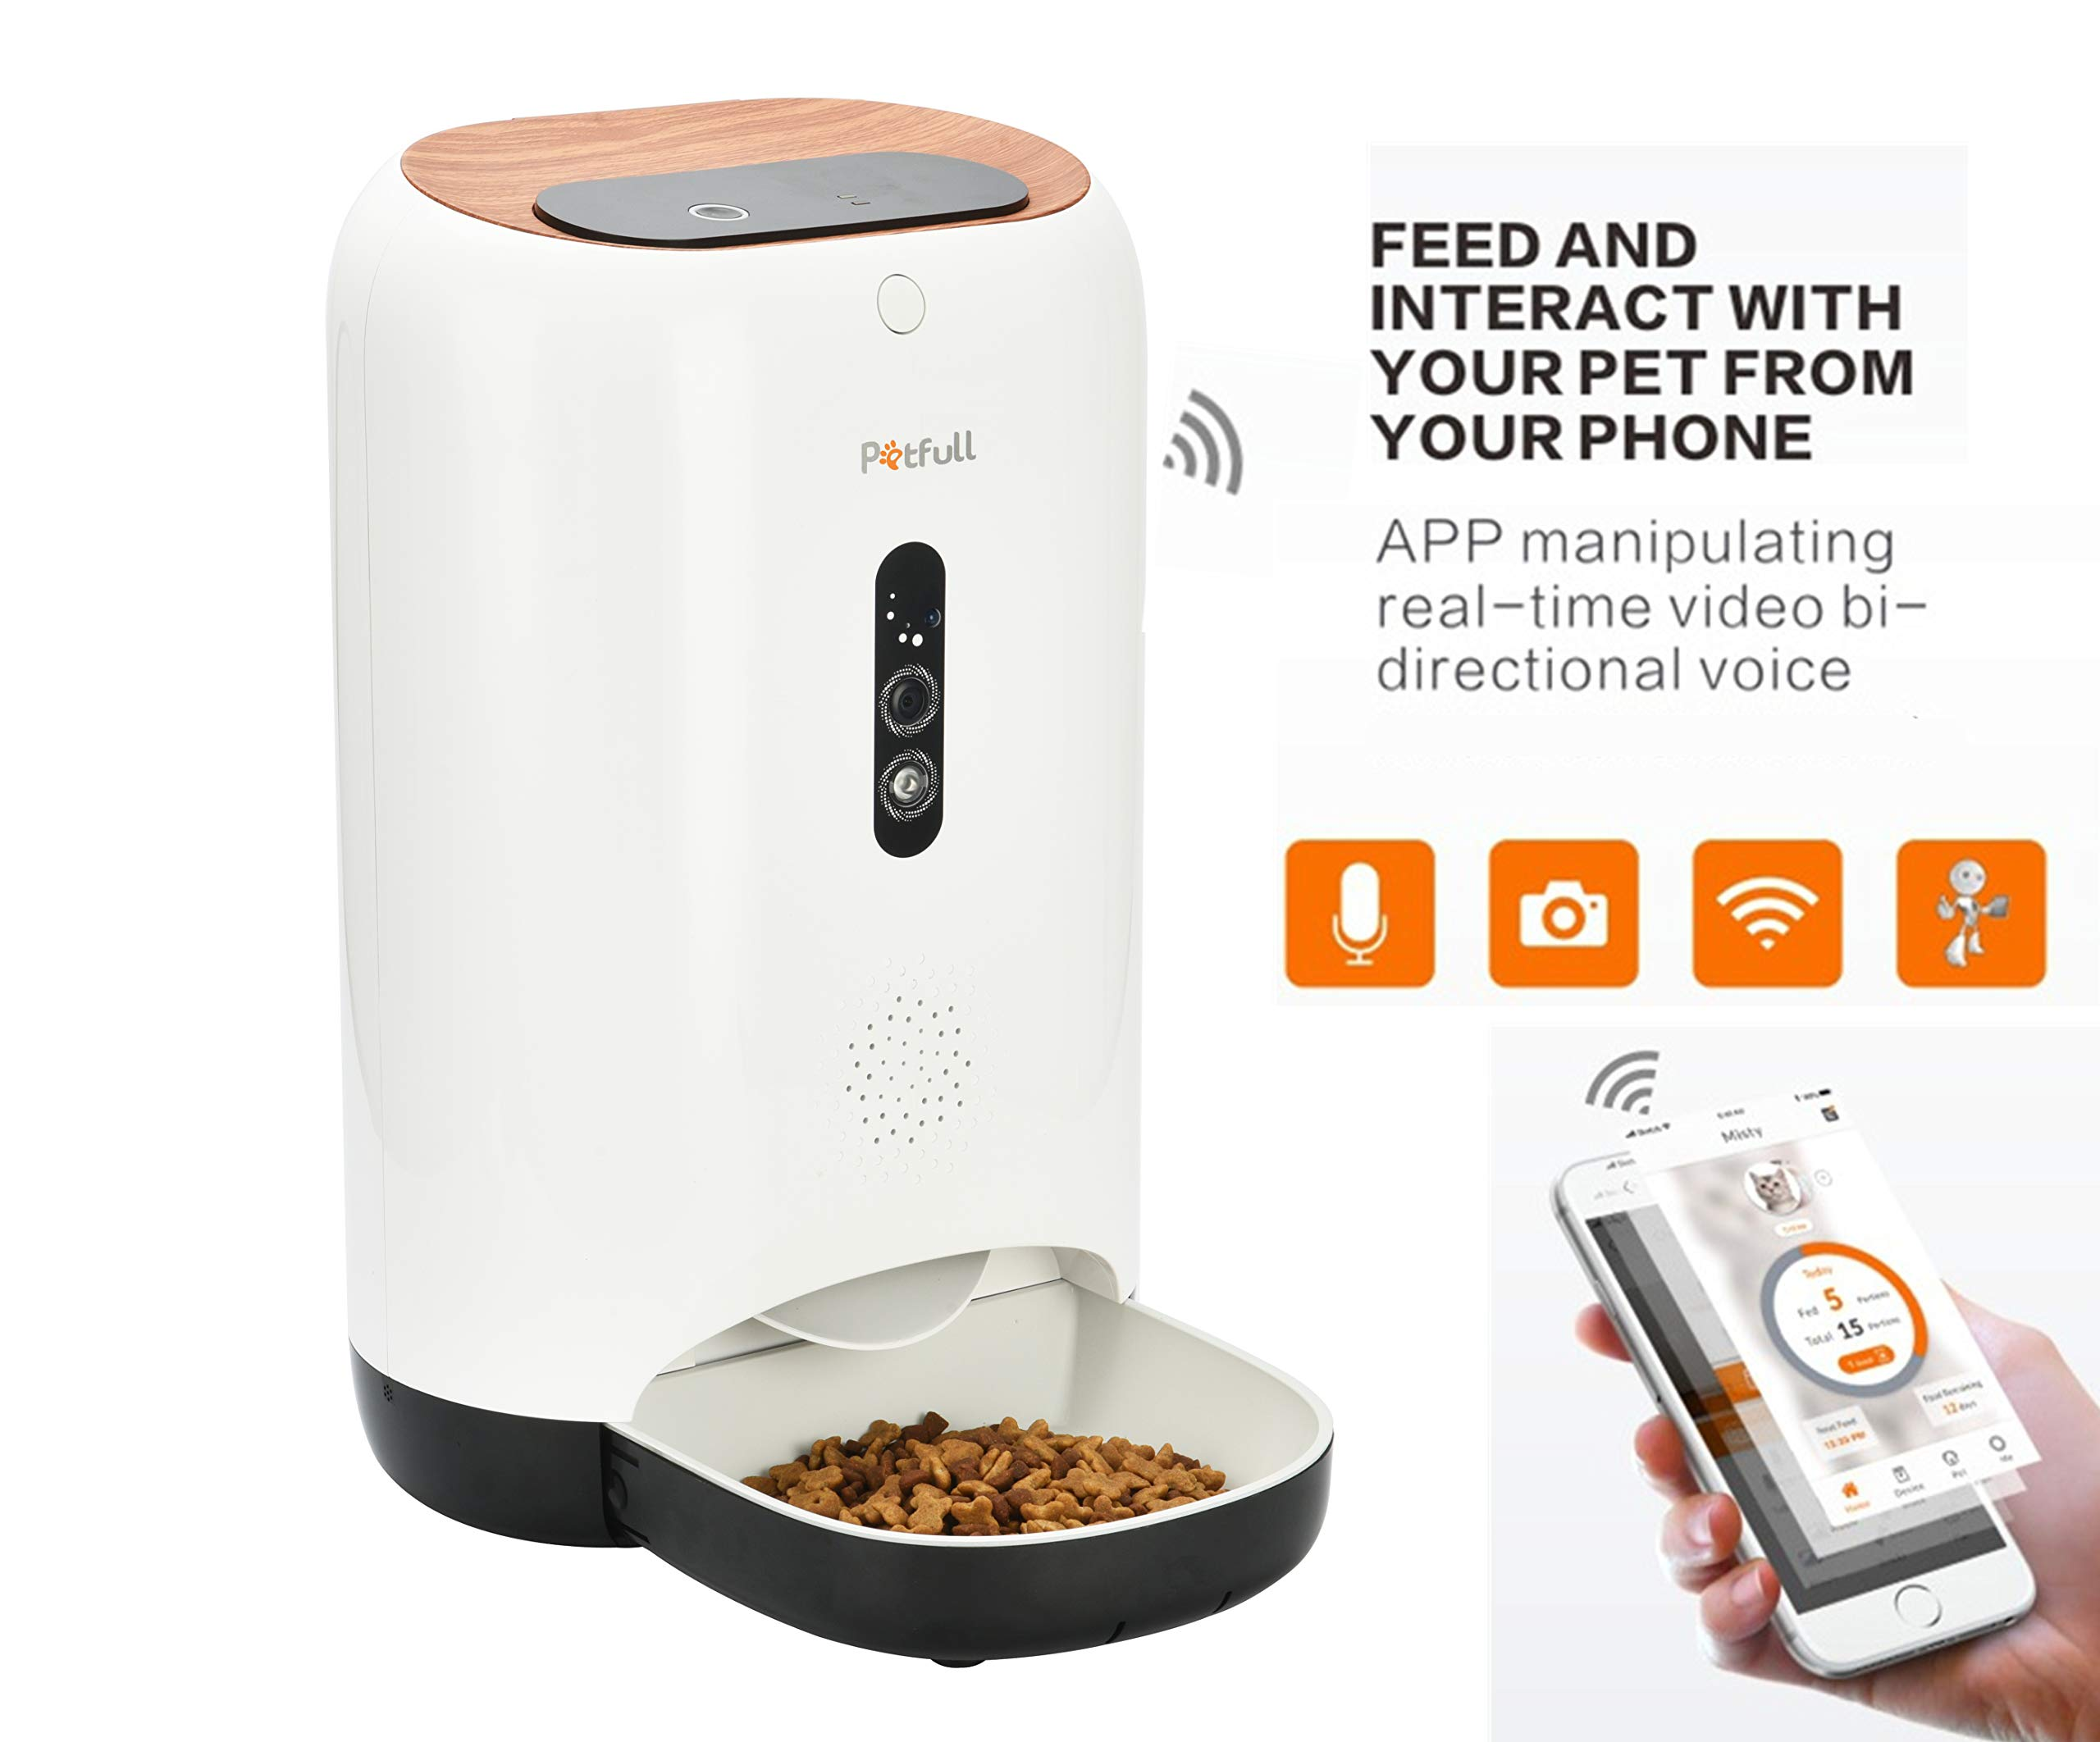 Petfull Smart Auto Pet Feeder with WiFi App Control HD-Camera Infrared for Dog Cat, 5L Large Capacity, Food Dispenser, Portion Control, Time Programmable, Back-up Power,Video Picture,Interact,Voice